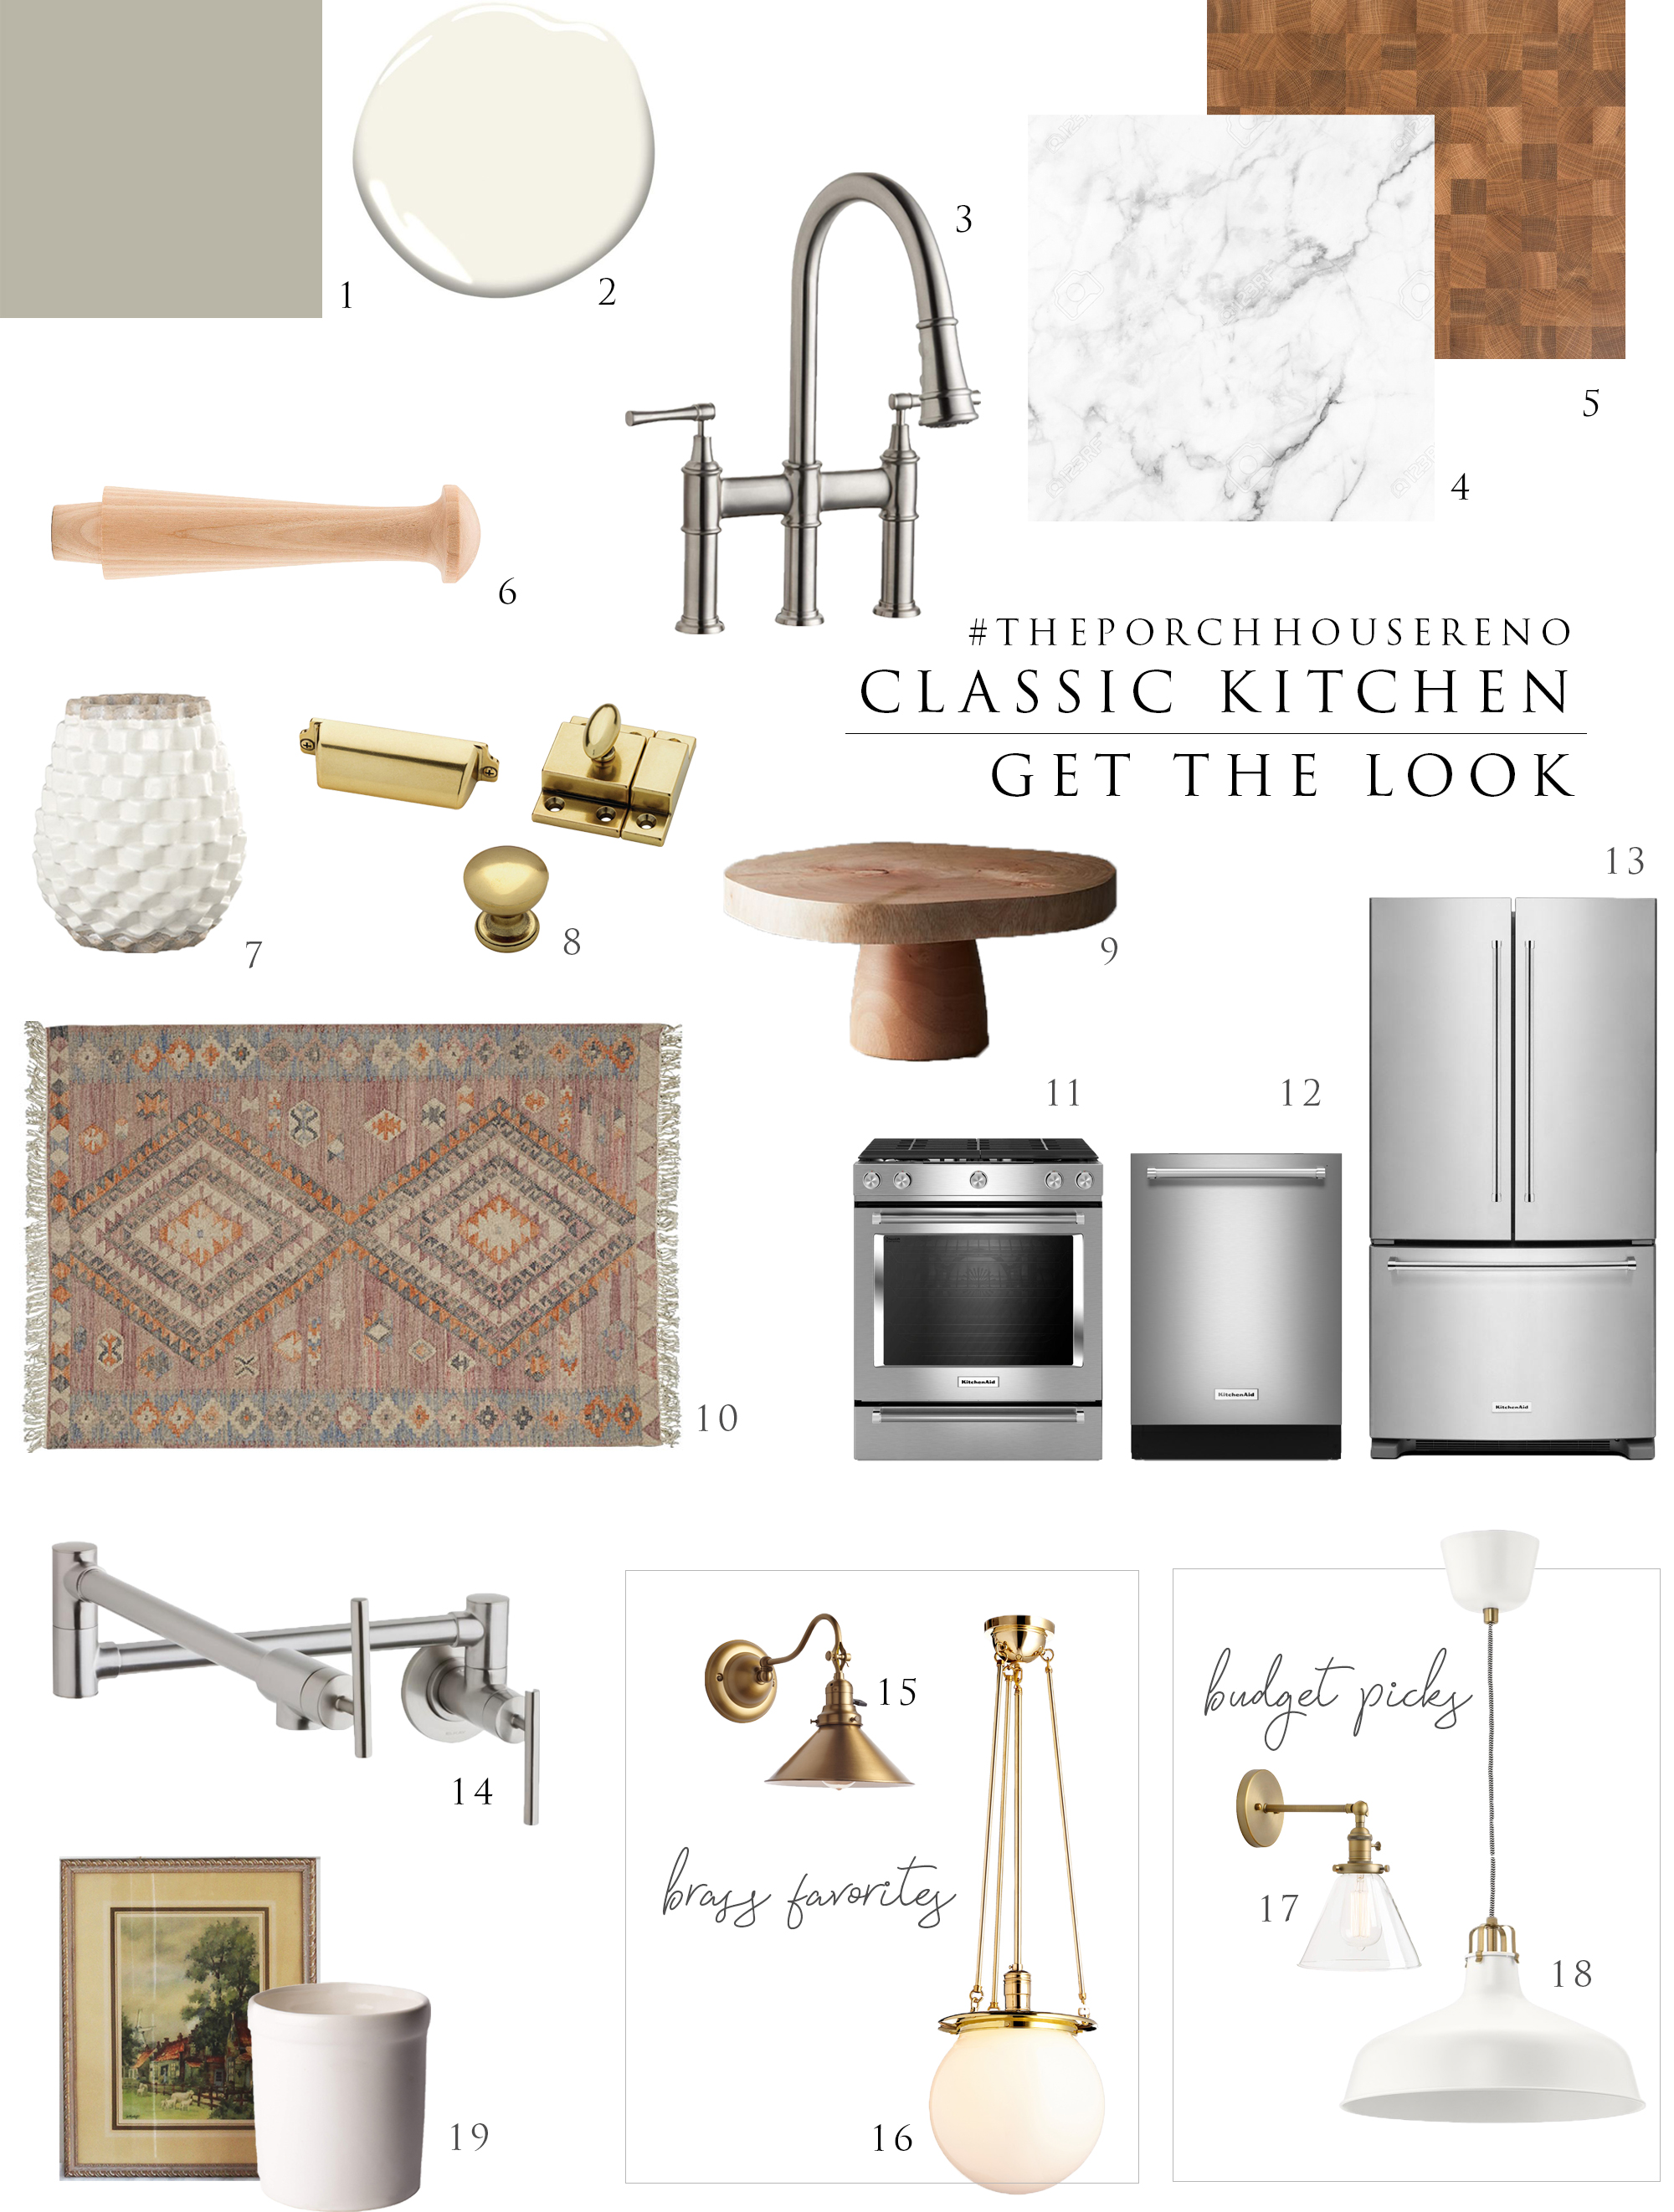 1. The Grit and Polish - Porch House Kitchen Sources.jpg